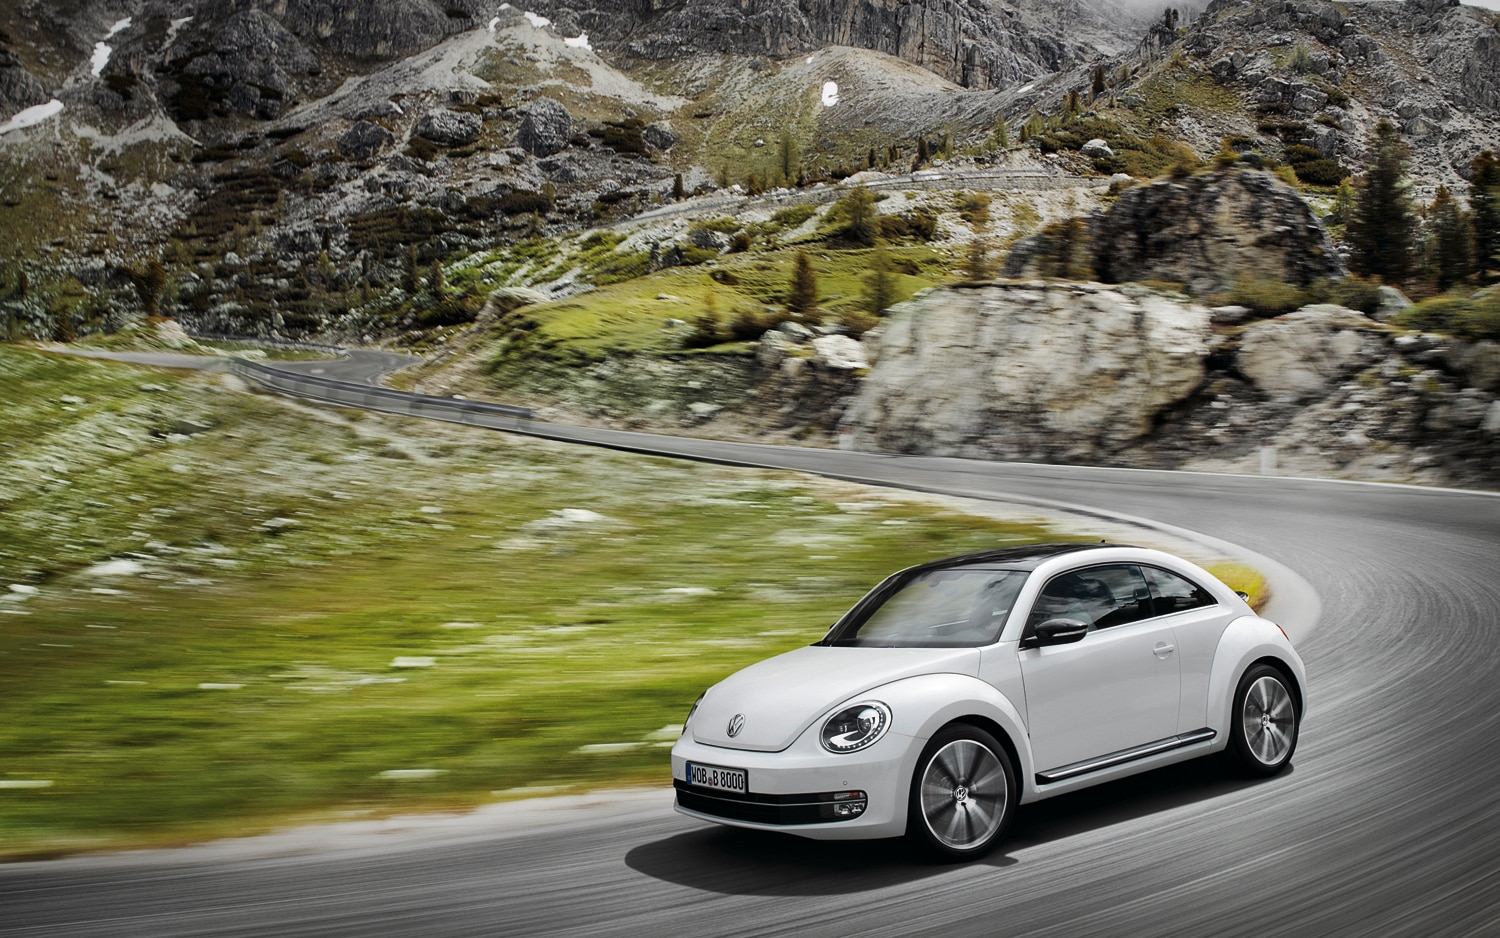 2012 volkswagen beetle turbo first drive automobile magazine. Black Bedroom Furniture Sets. Home Design Ideas